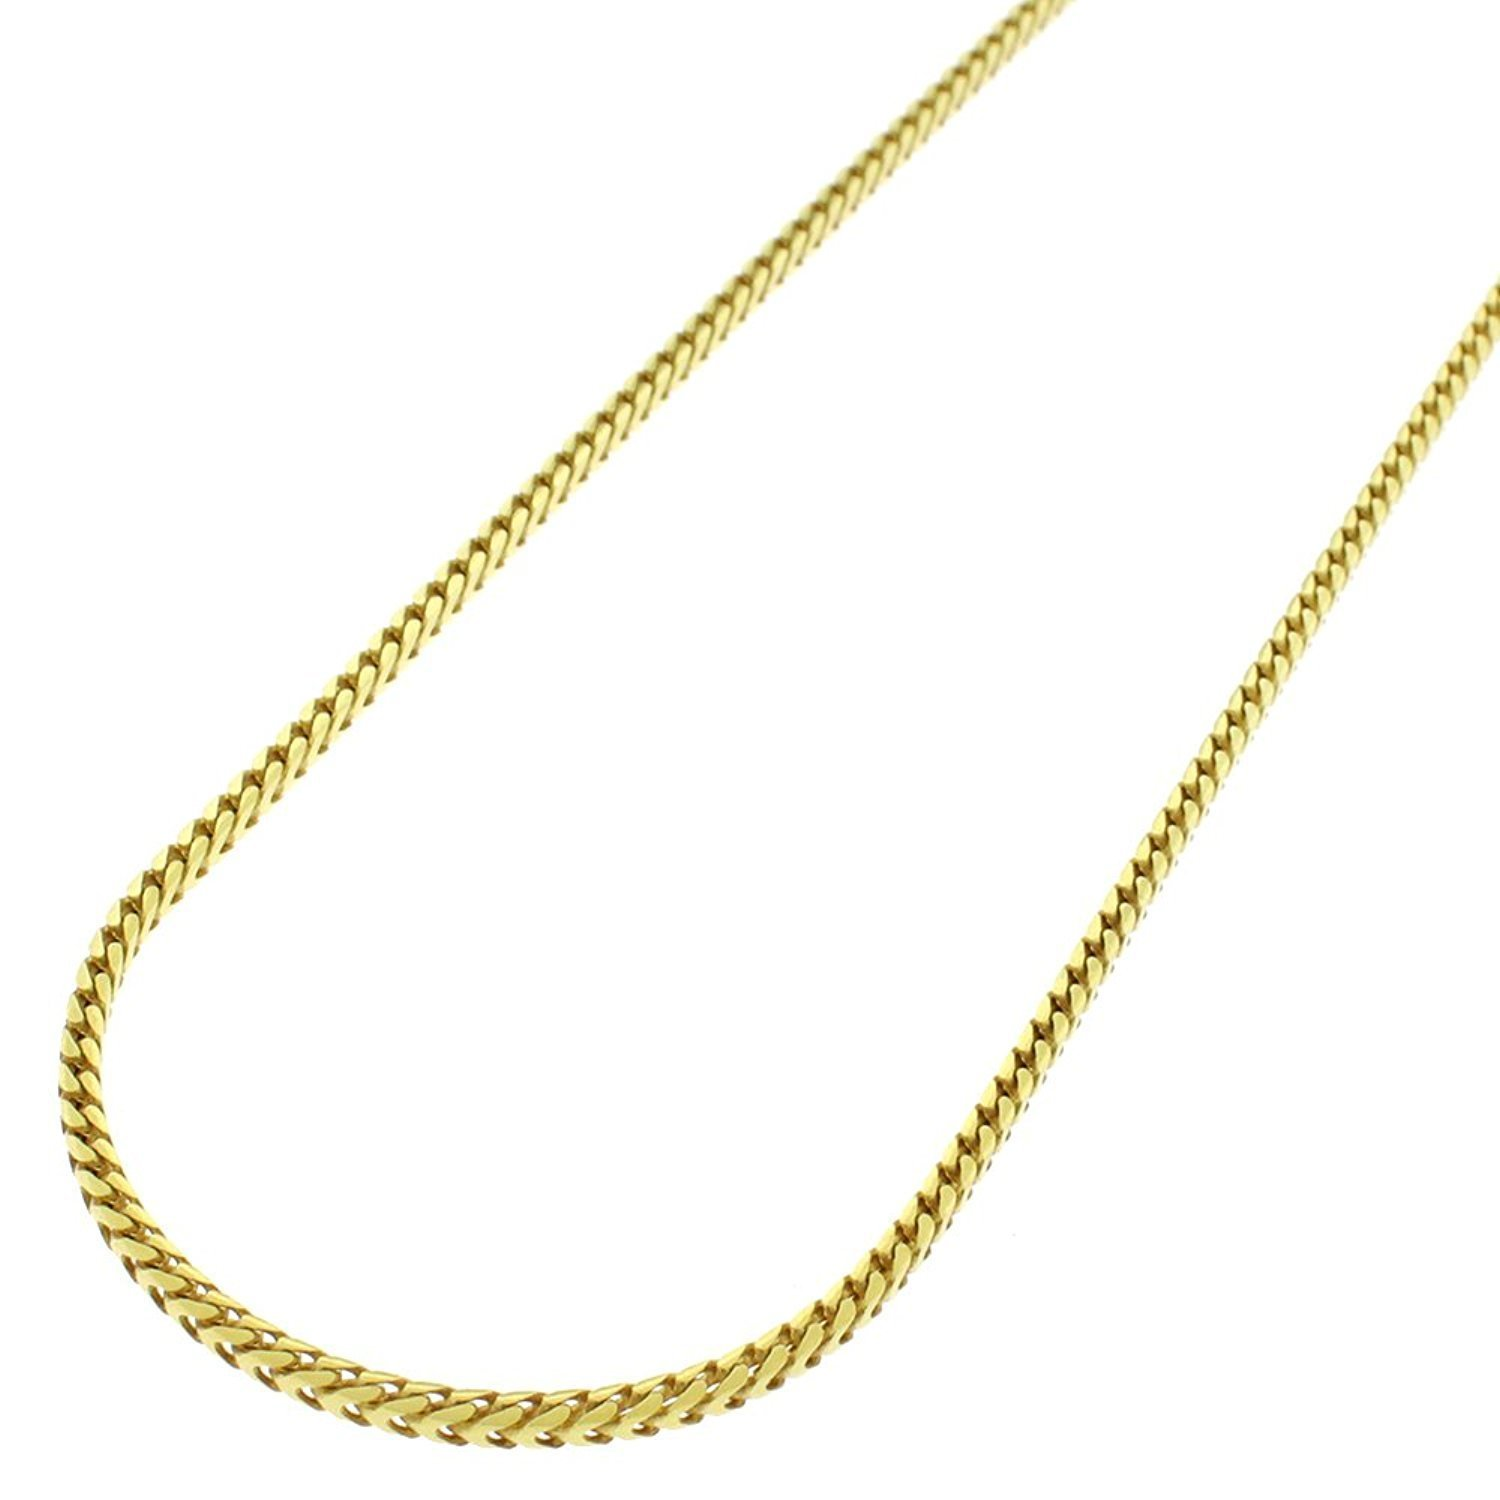 14k Yellow Gold 1.5mm Solid Franco Square Box Link Necklace Chain 16'' - 24'' (16)